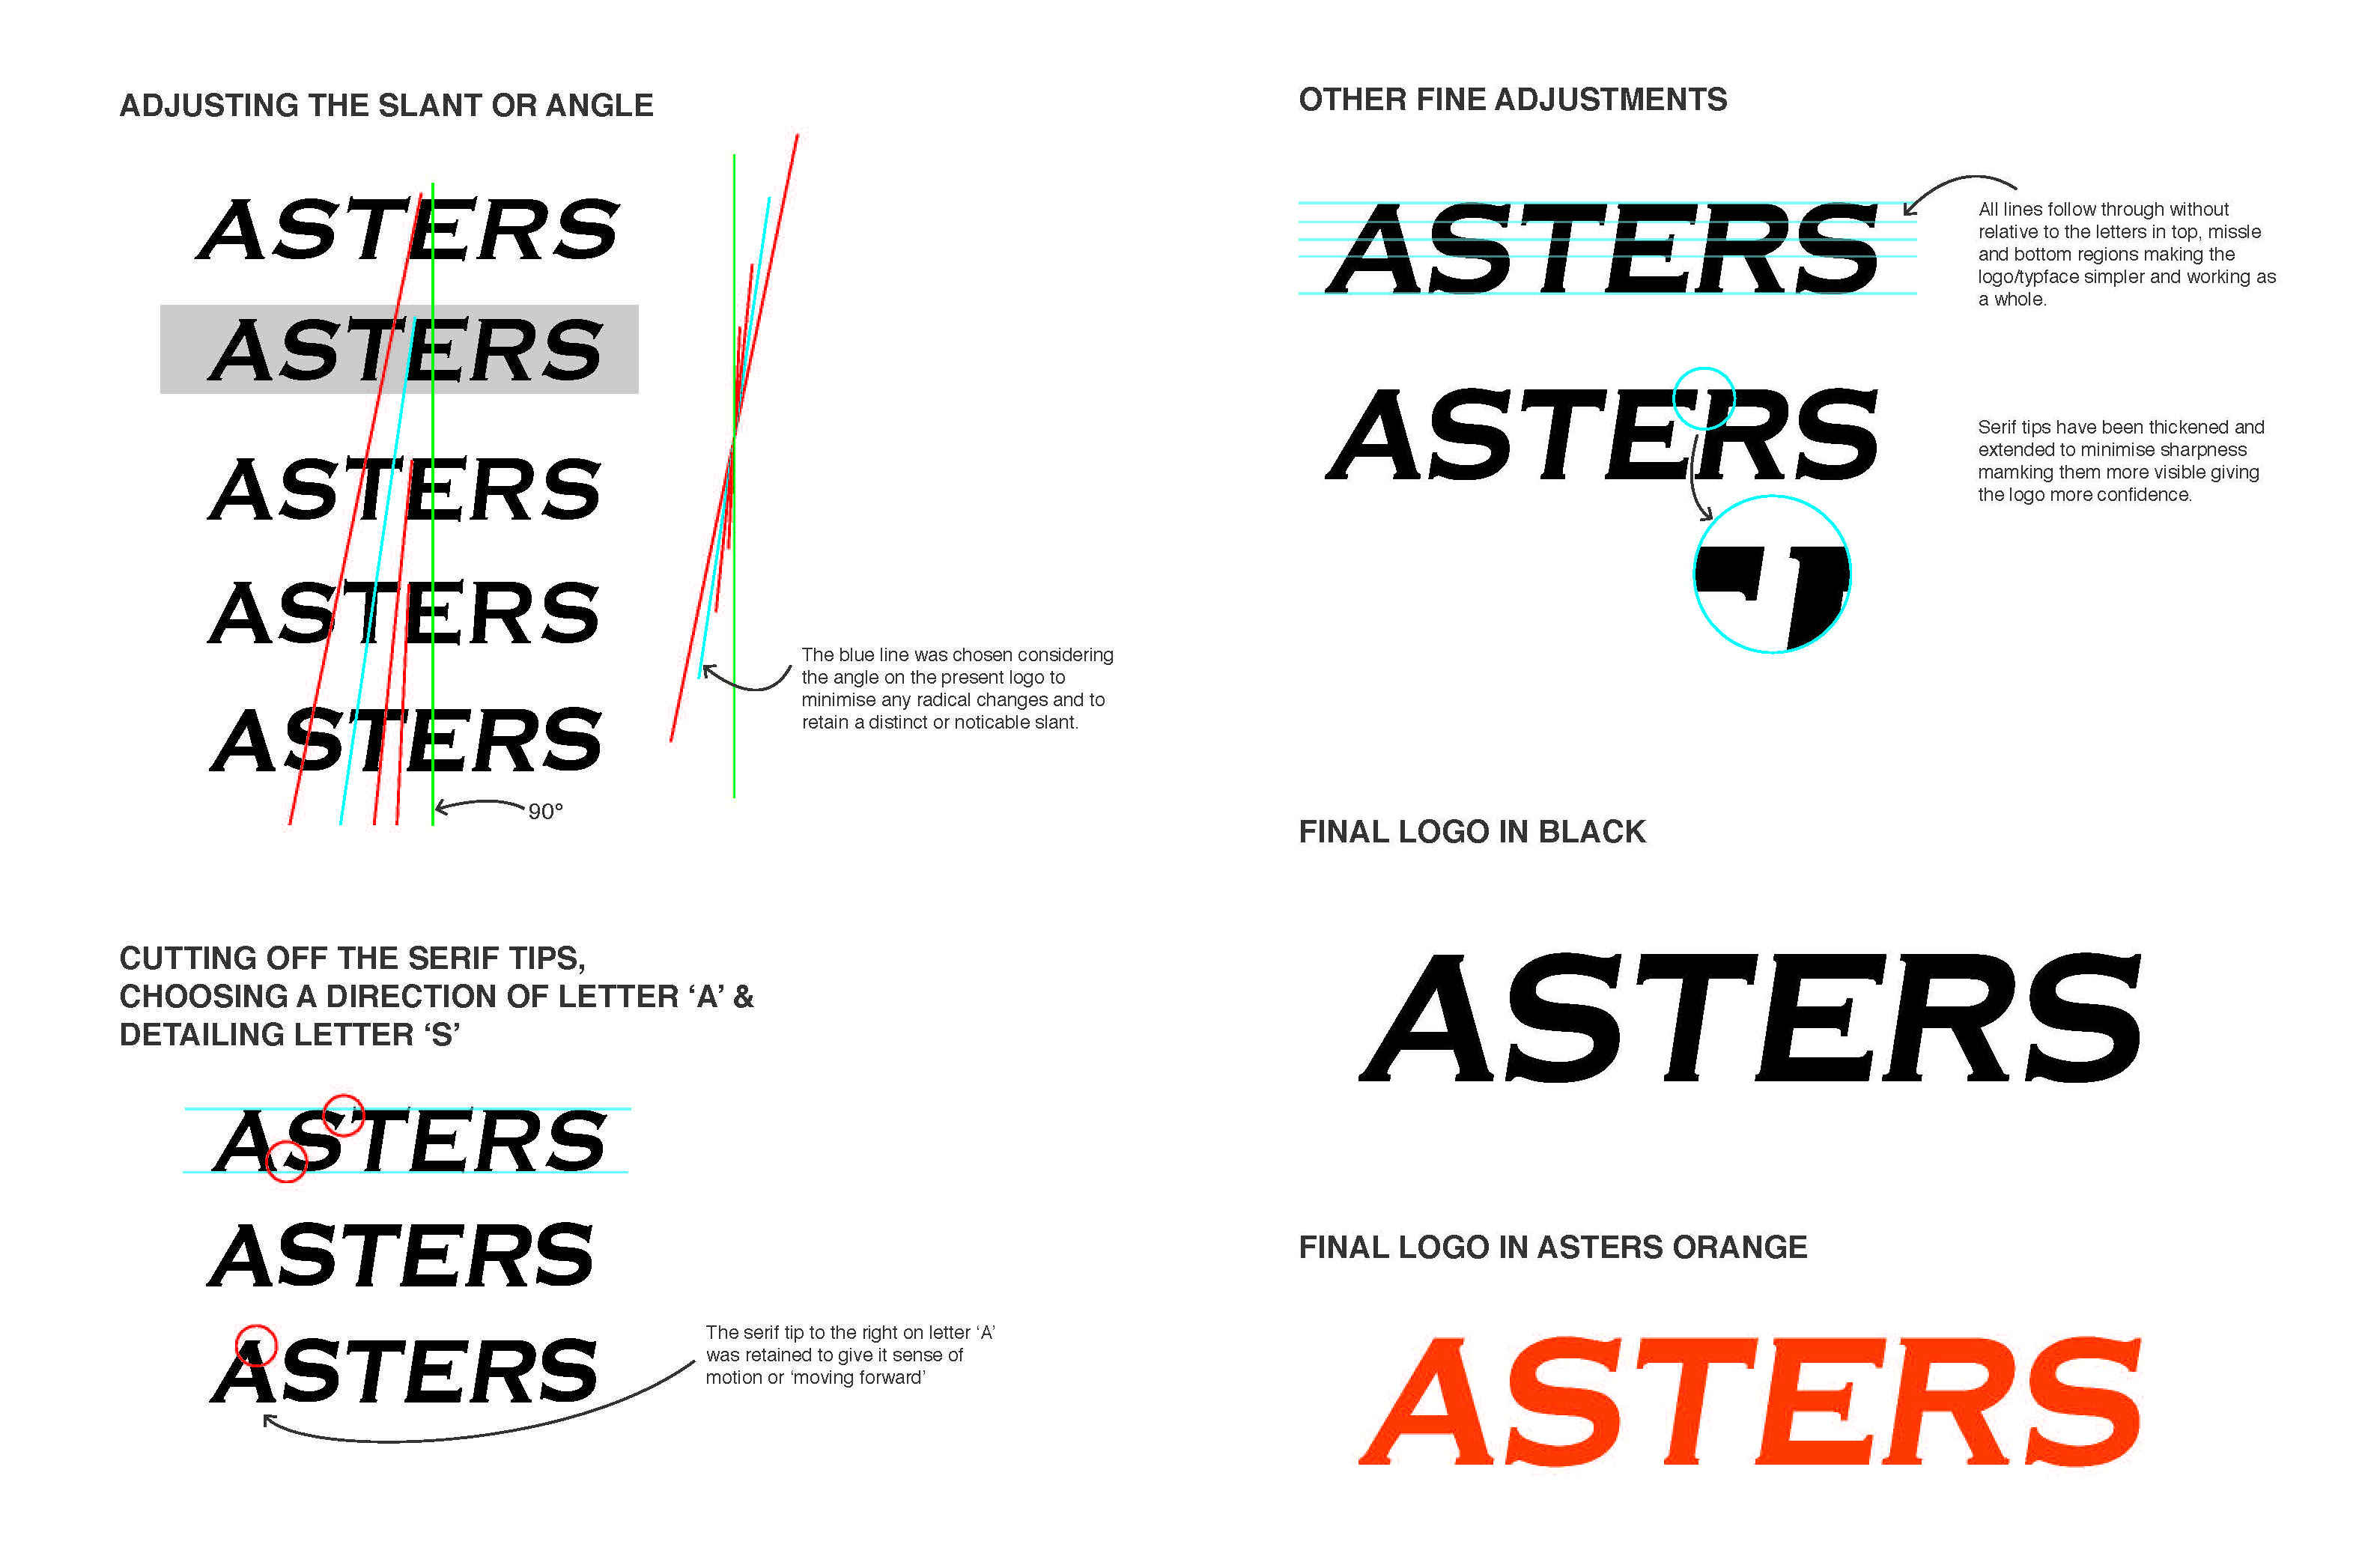 asters-03